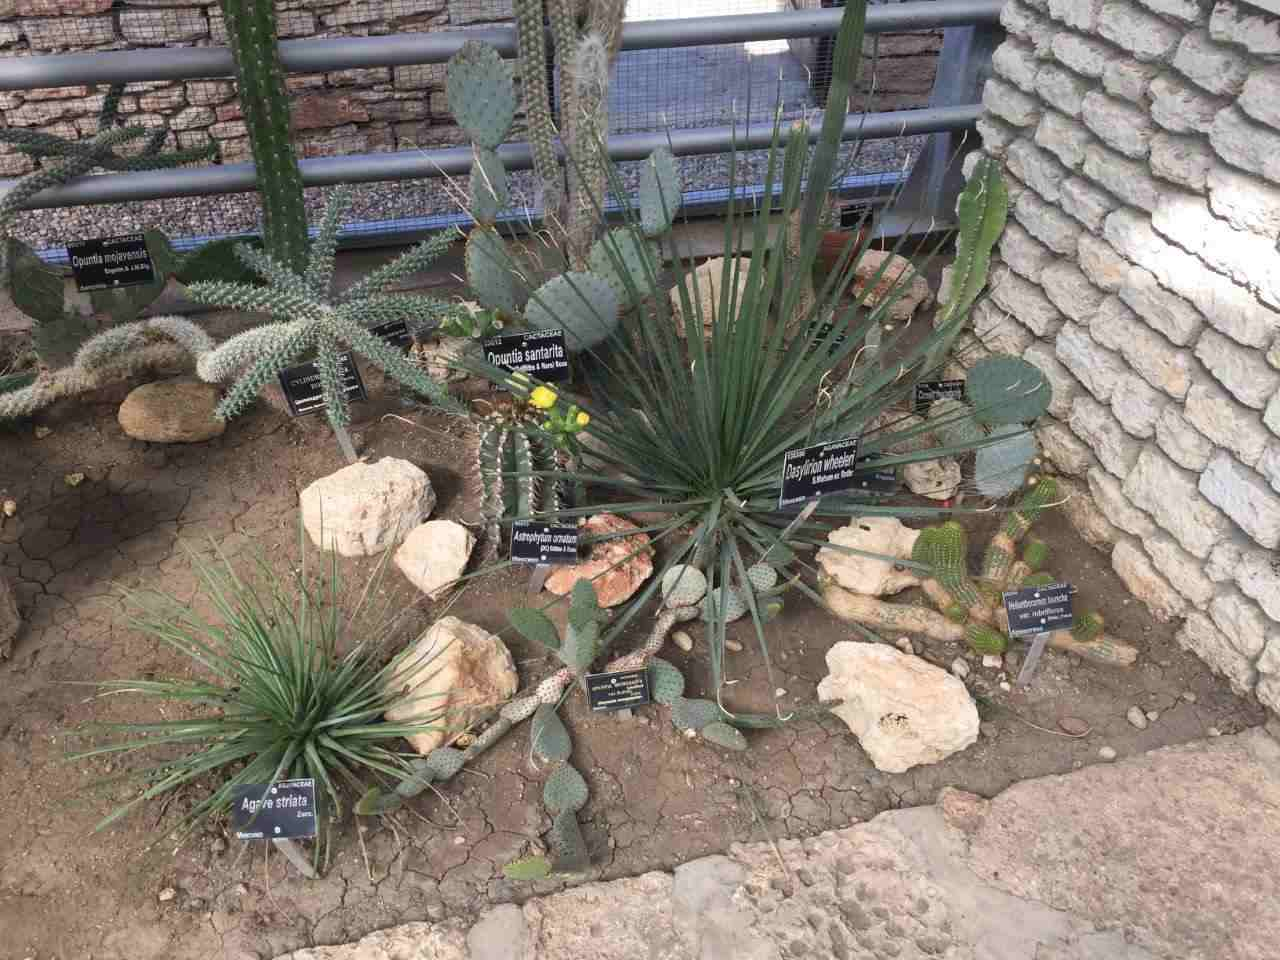 Daslyrion wheeleri, Agave striata and other cacti